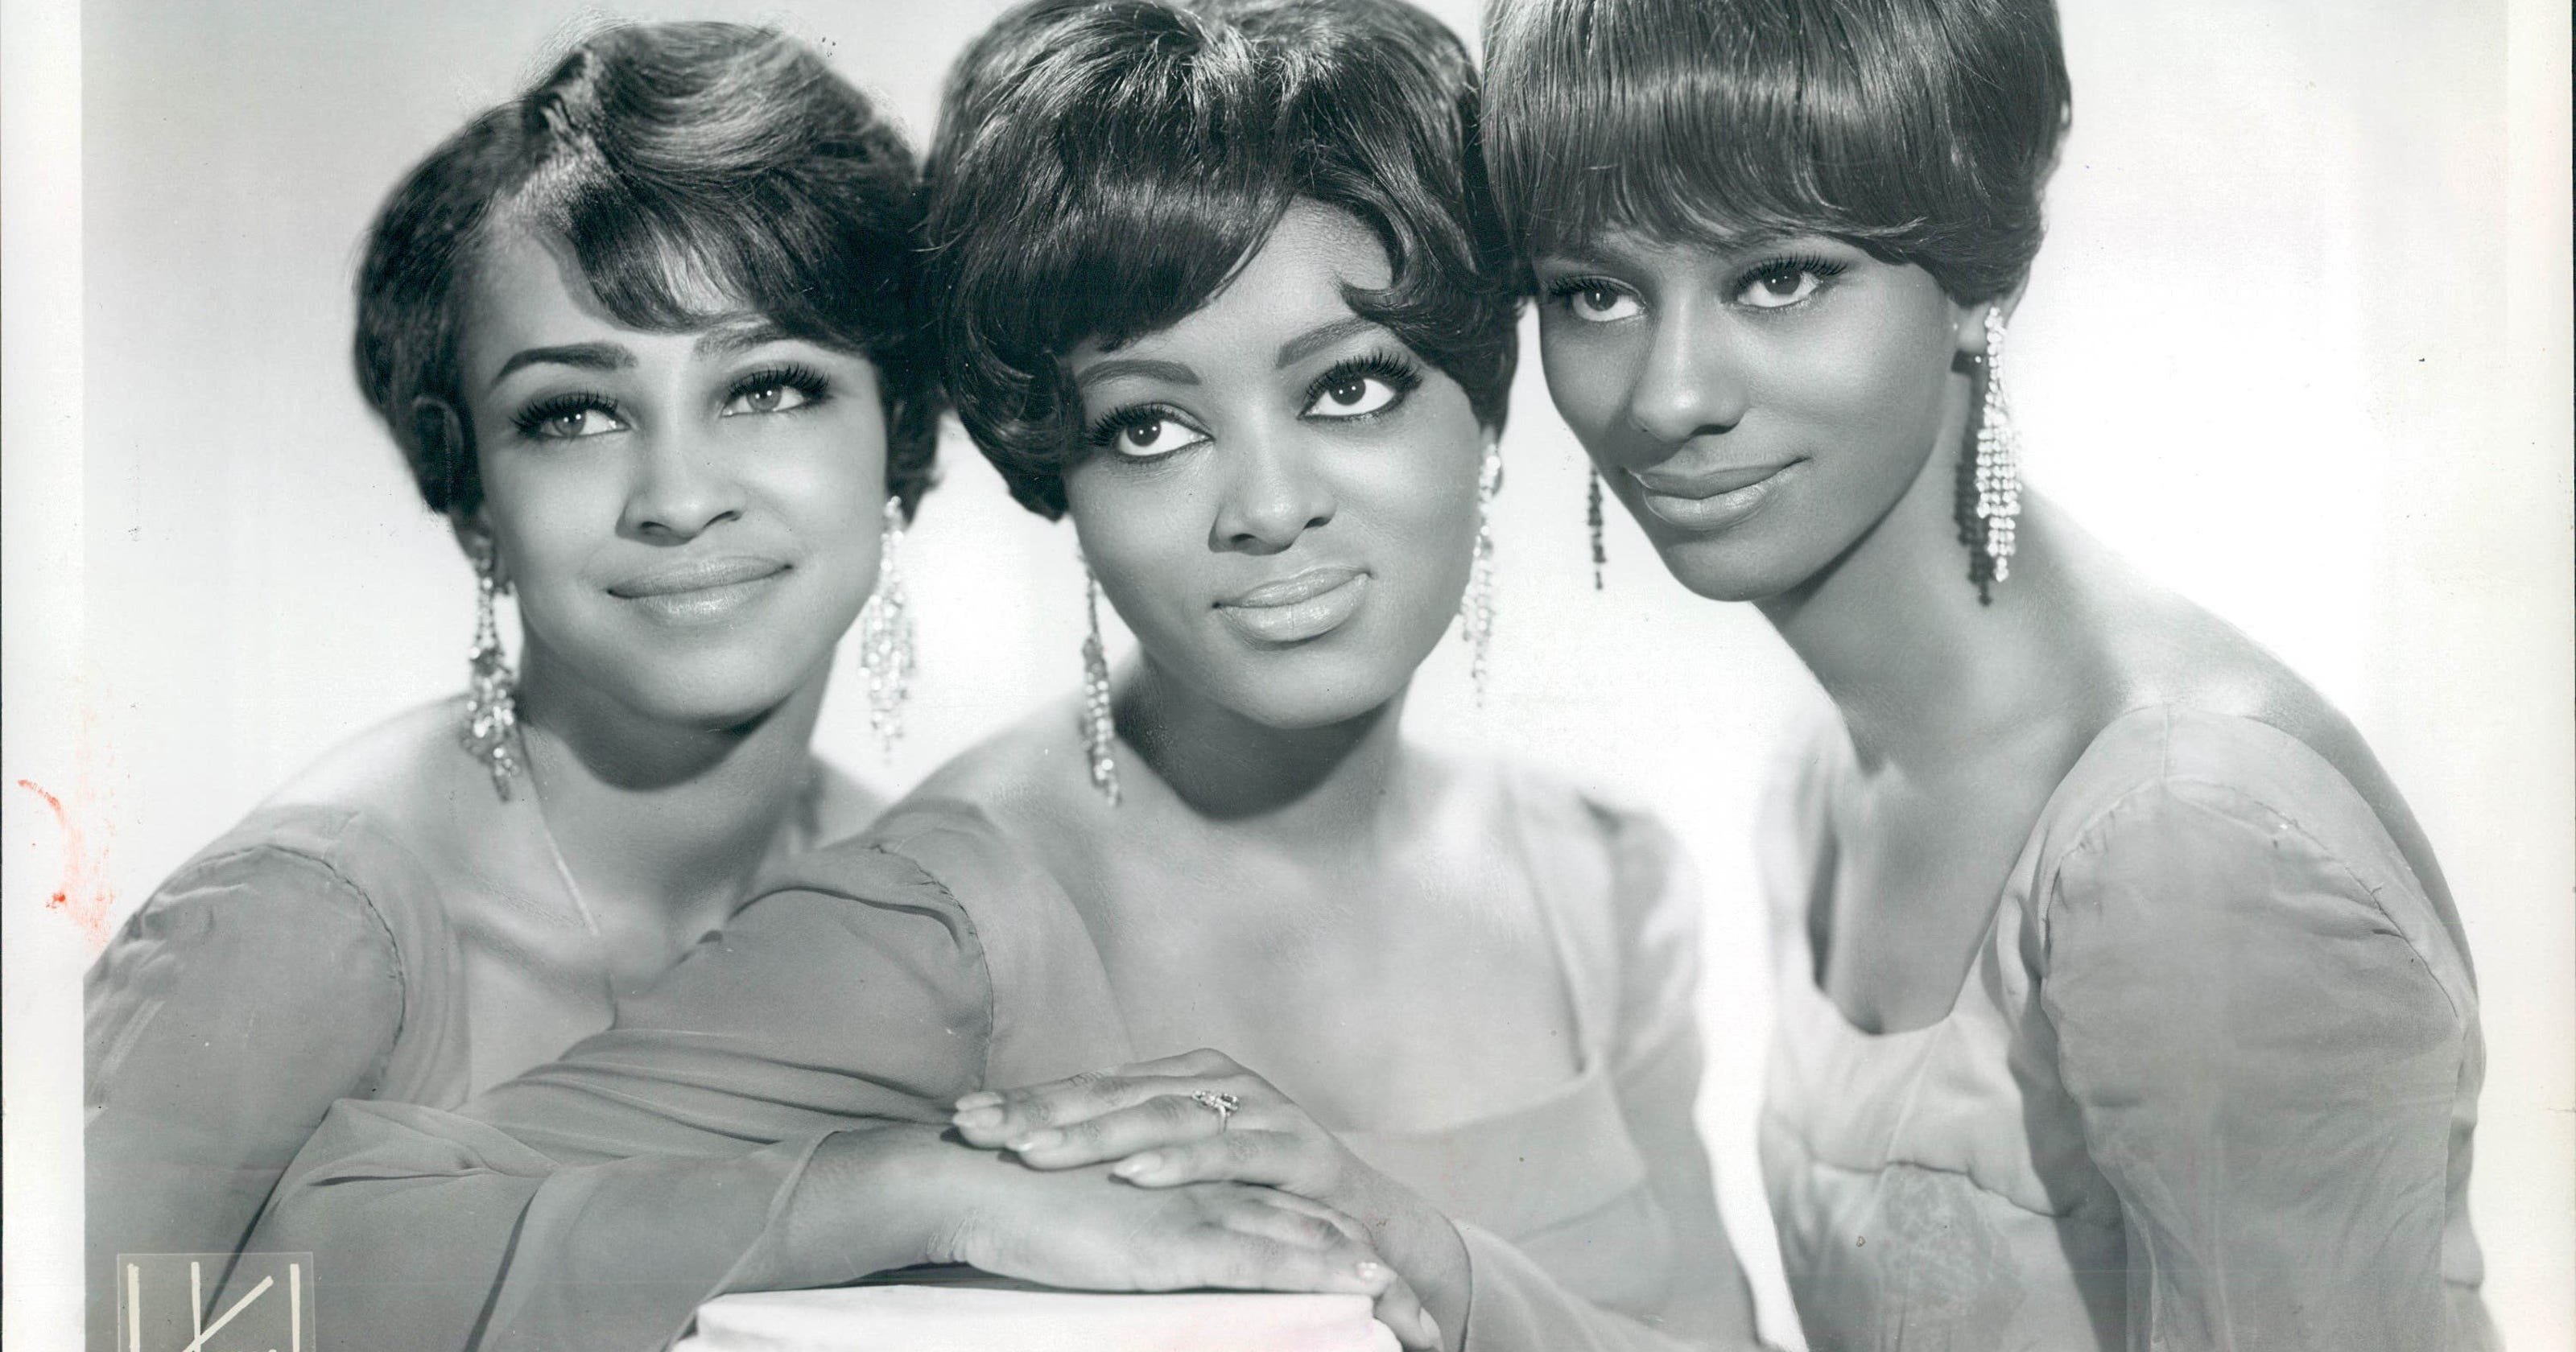 15 of the best Motown songs you've likely never heard